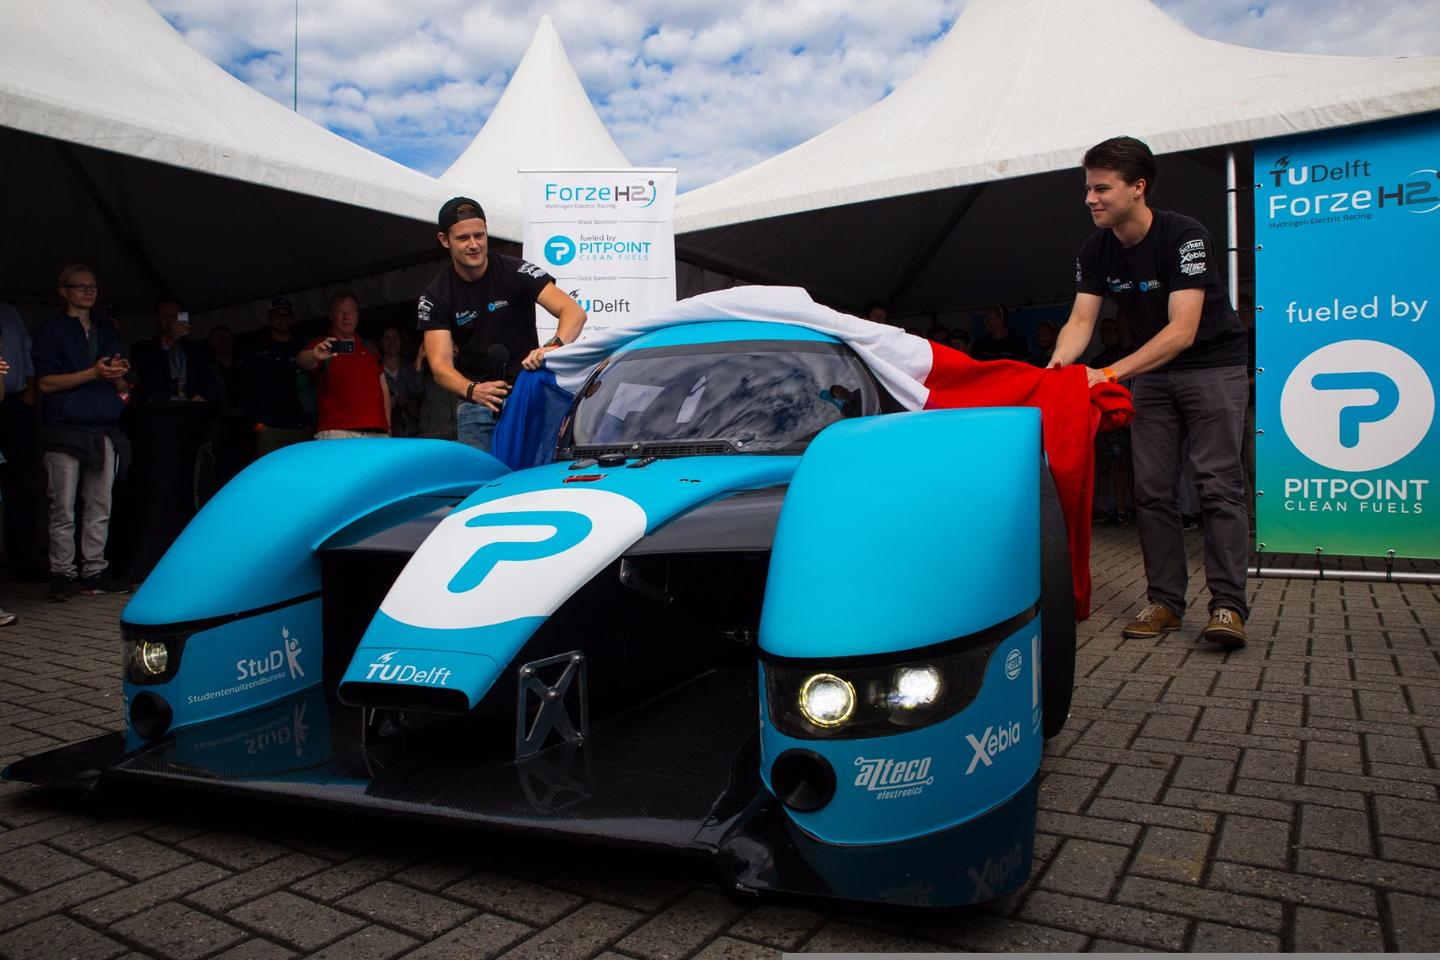 The Forze VII hasa fuel cell power of 100 kW (135 hp) and a boost power of 200 kW (270 hp)